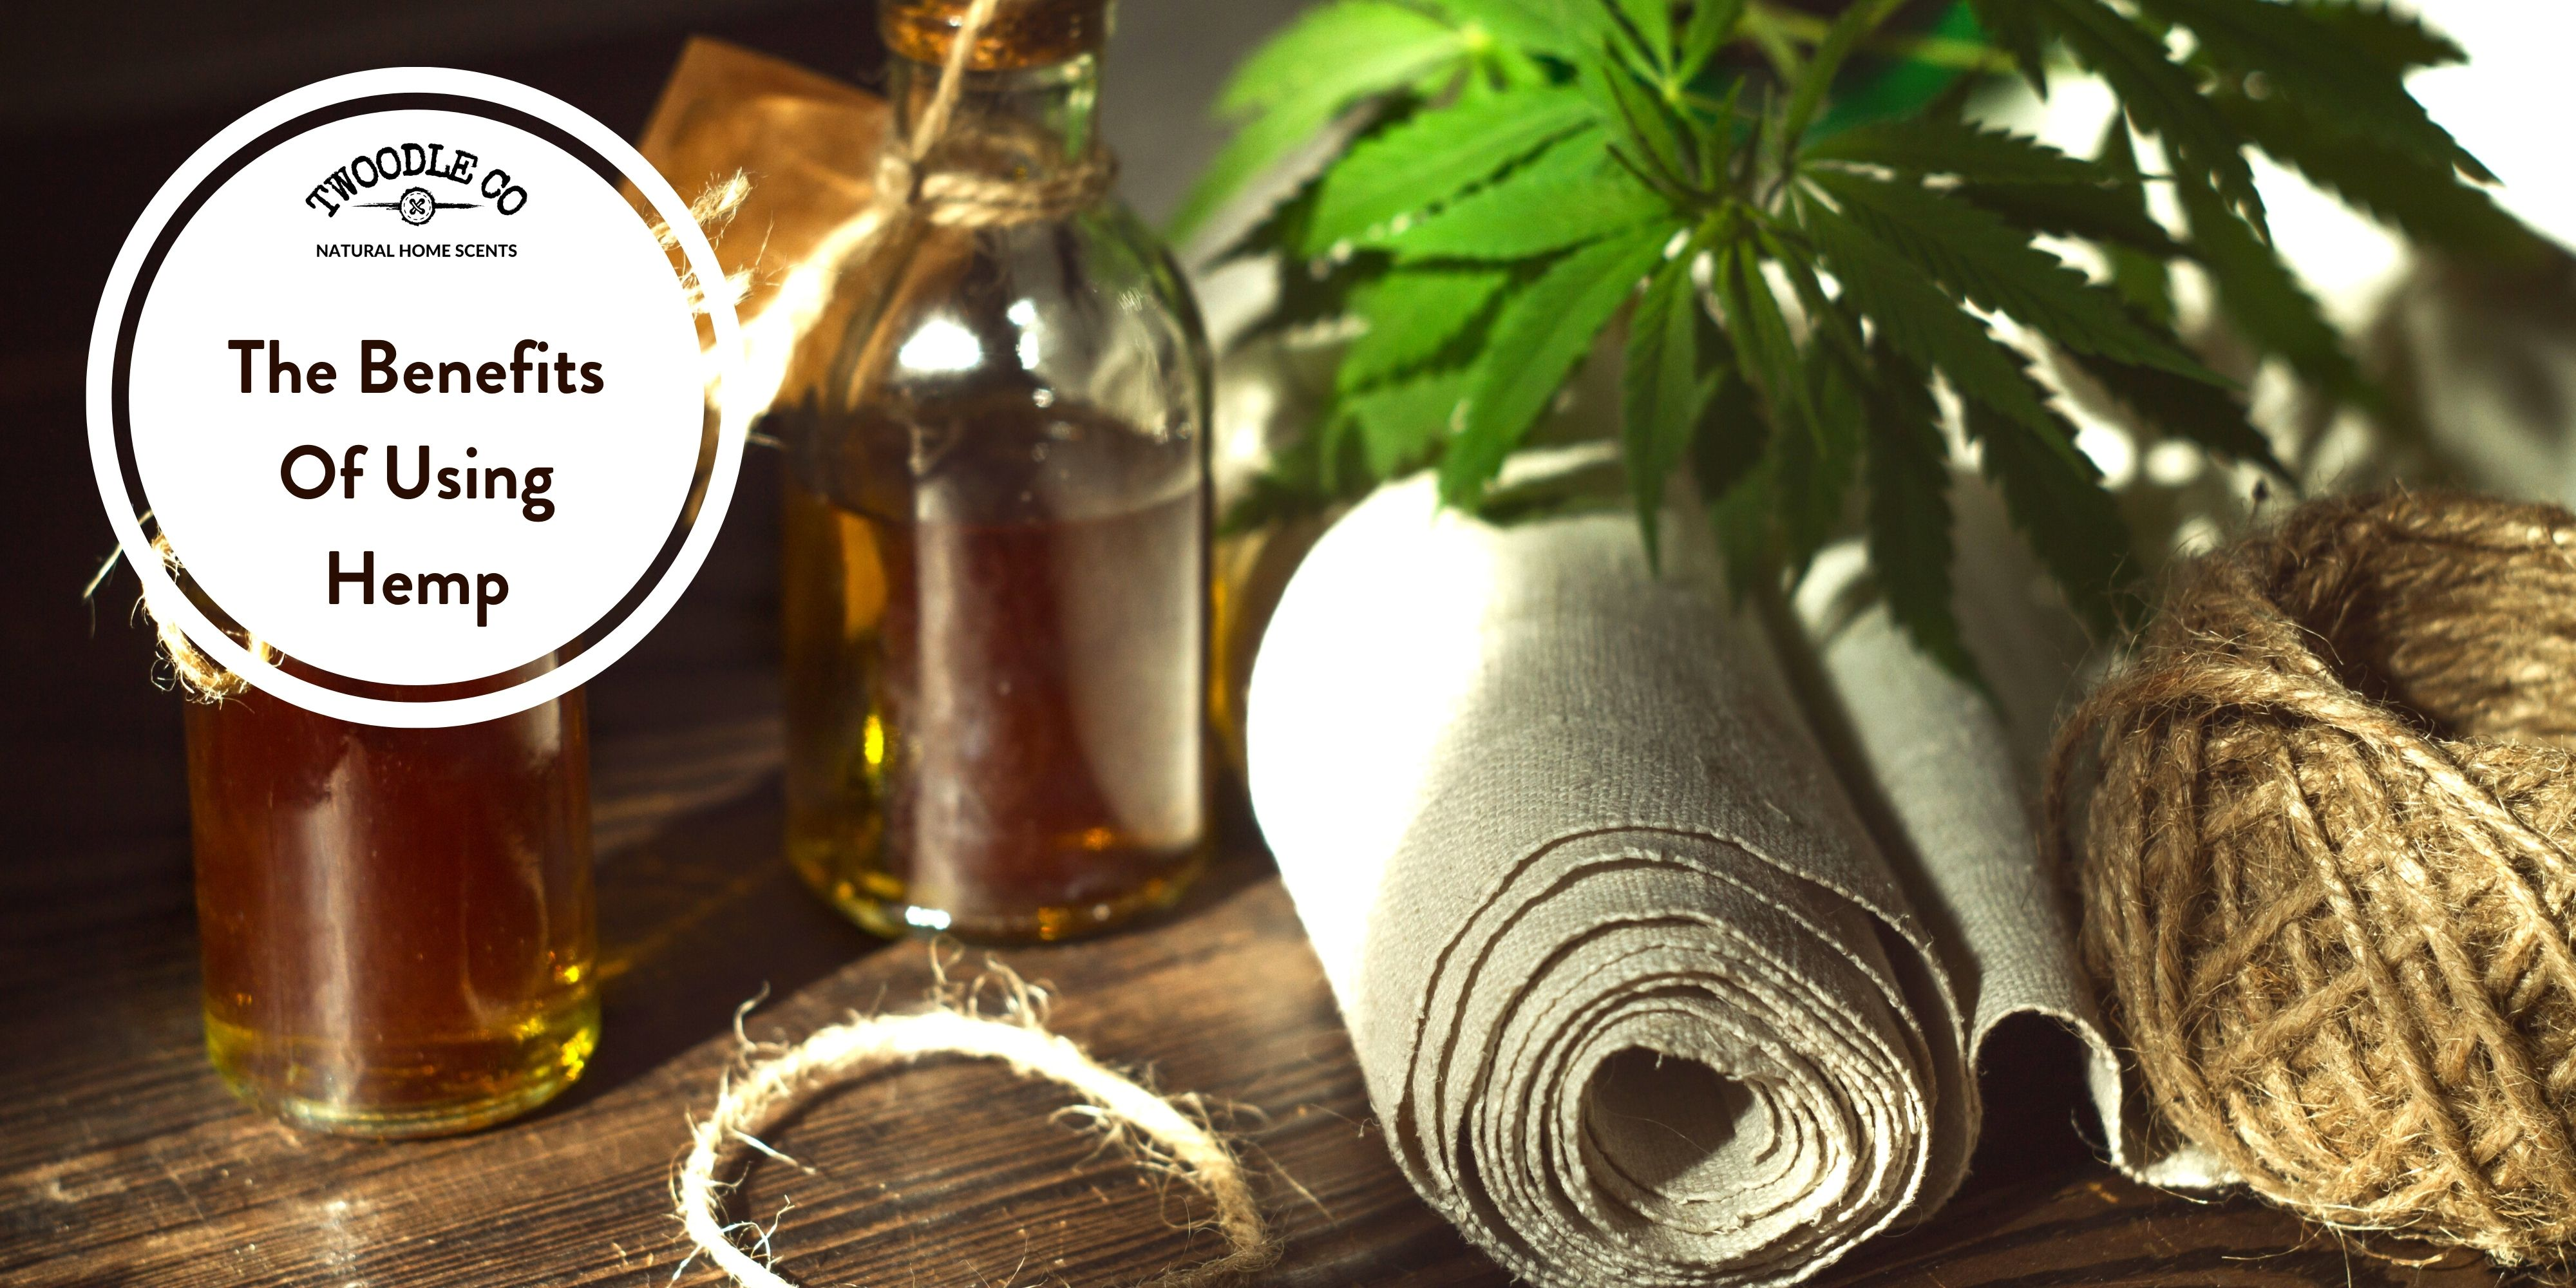 The Benefits Of Using Hemp In Cosmetic And Homeware Products